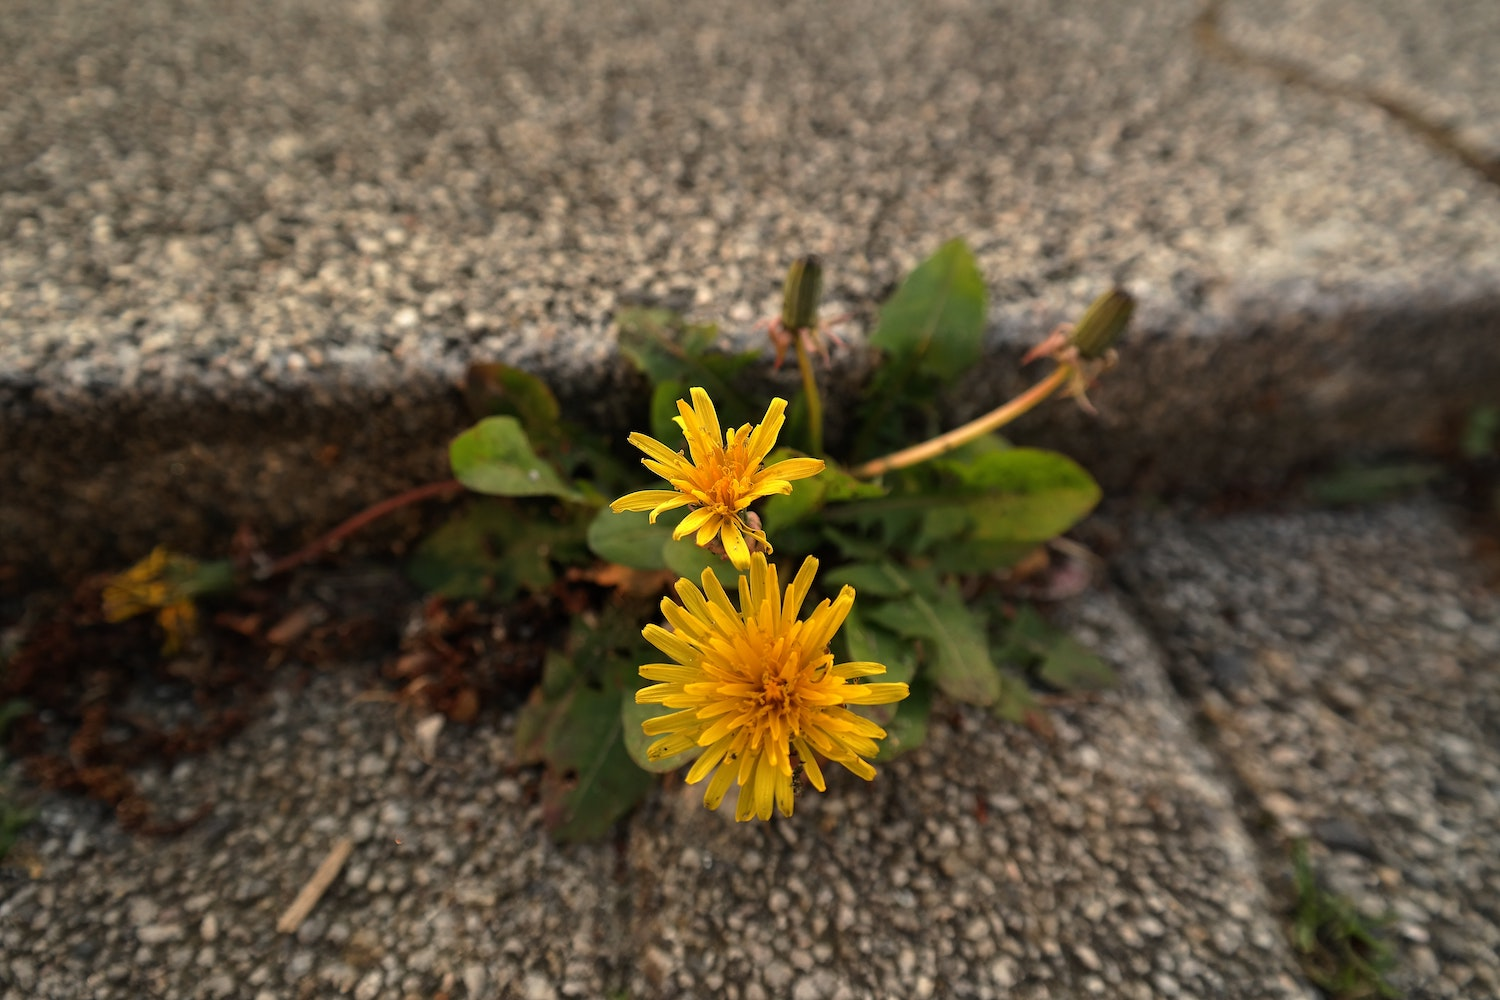 Dandelions grow in a crack in concrete